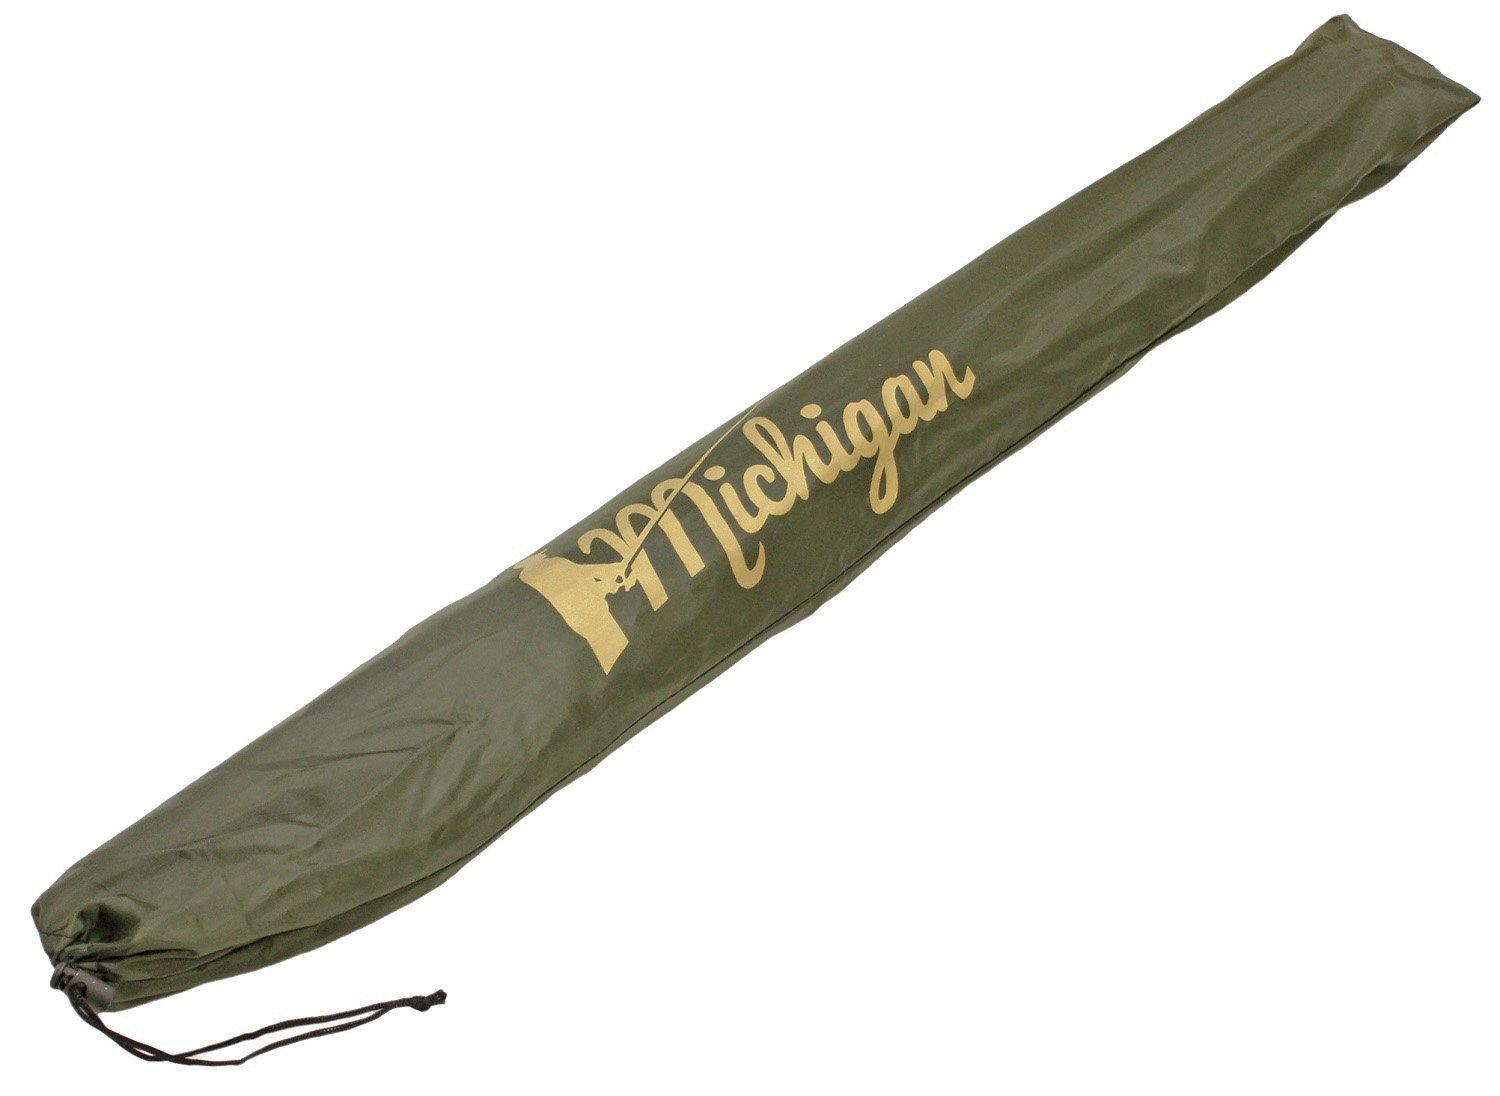 "Michigan Fishing Umbrella with Top Tilt and Sides Brolly Shelter with FREE Carry Bag, Olive Green, 50"", 60"", 75"" or 86"" 4"